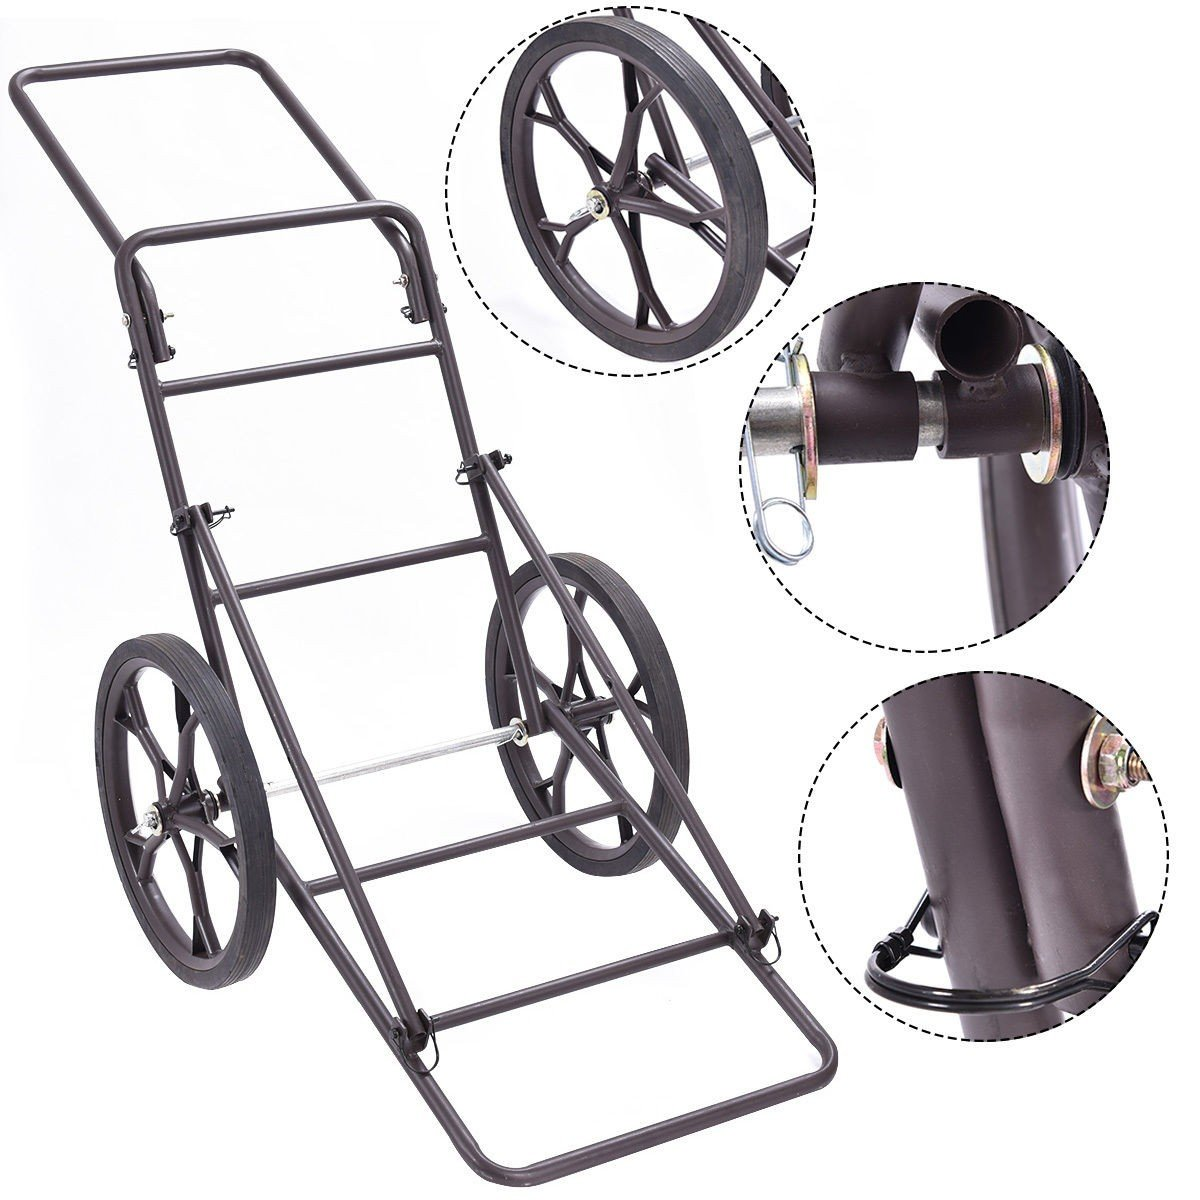 Deer Cart 500LB Game Hauler Utility Gear Dolly Cart Hunting Accessories